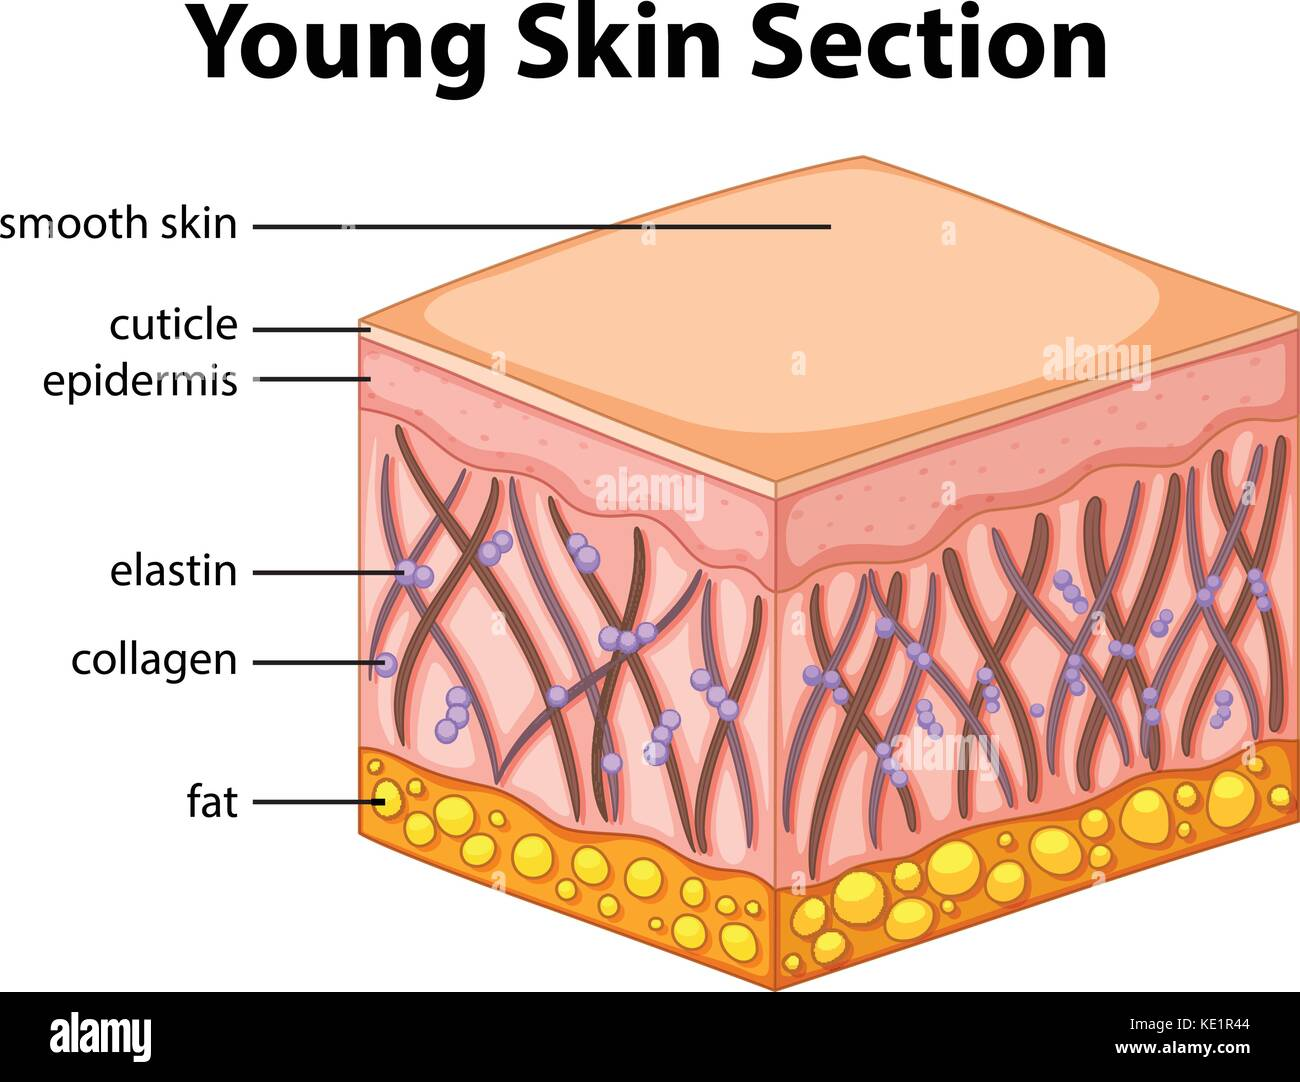 Human Skin Section Diagram Stockfotos & Human Skin Section Diagram ...